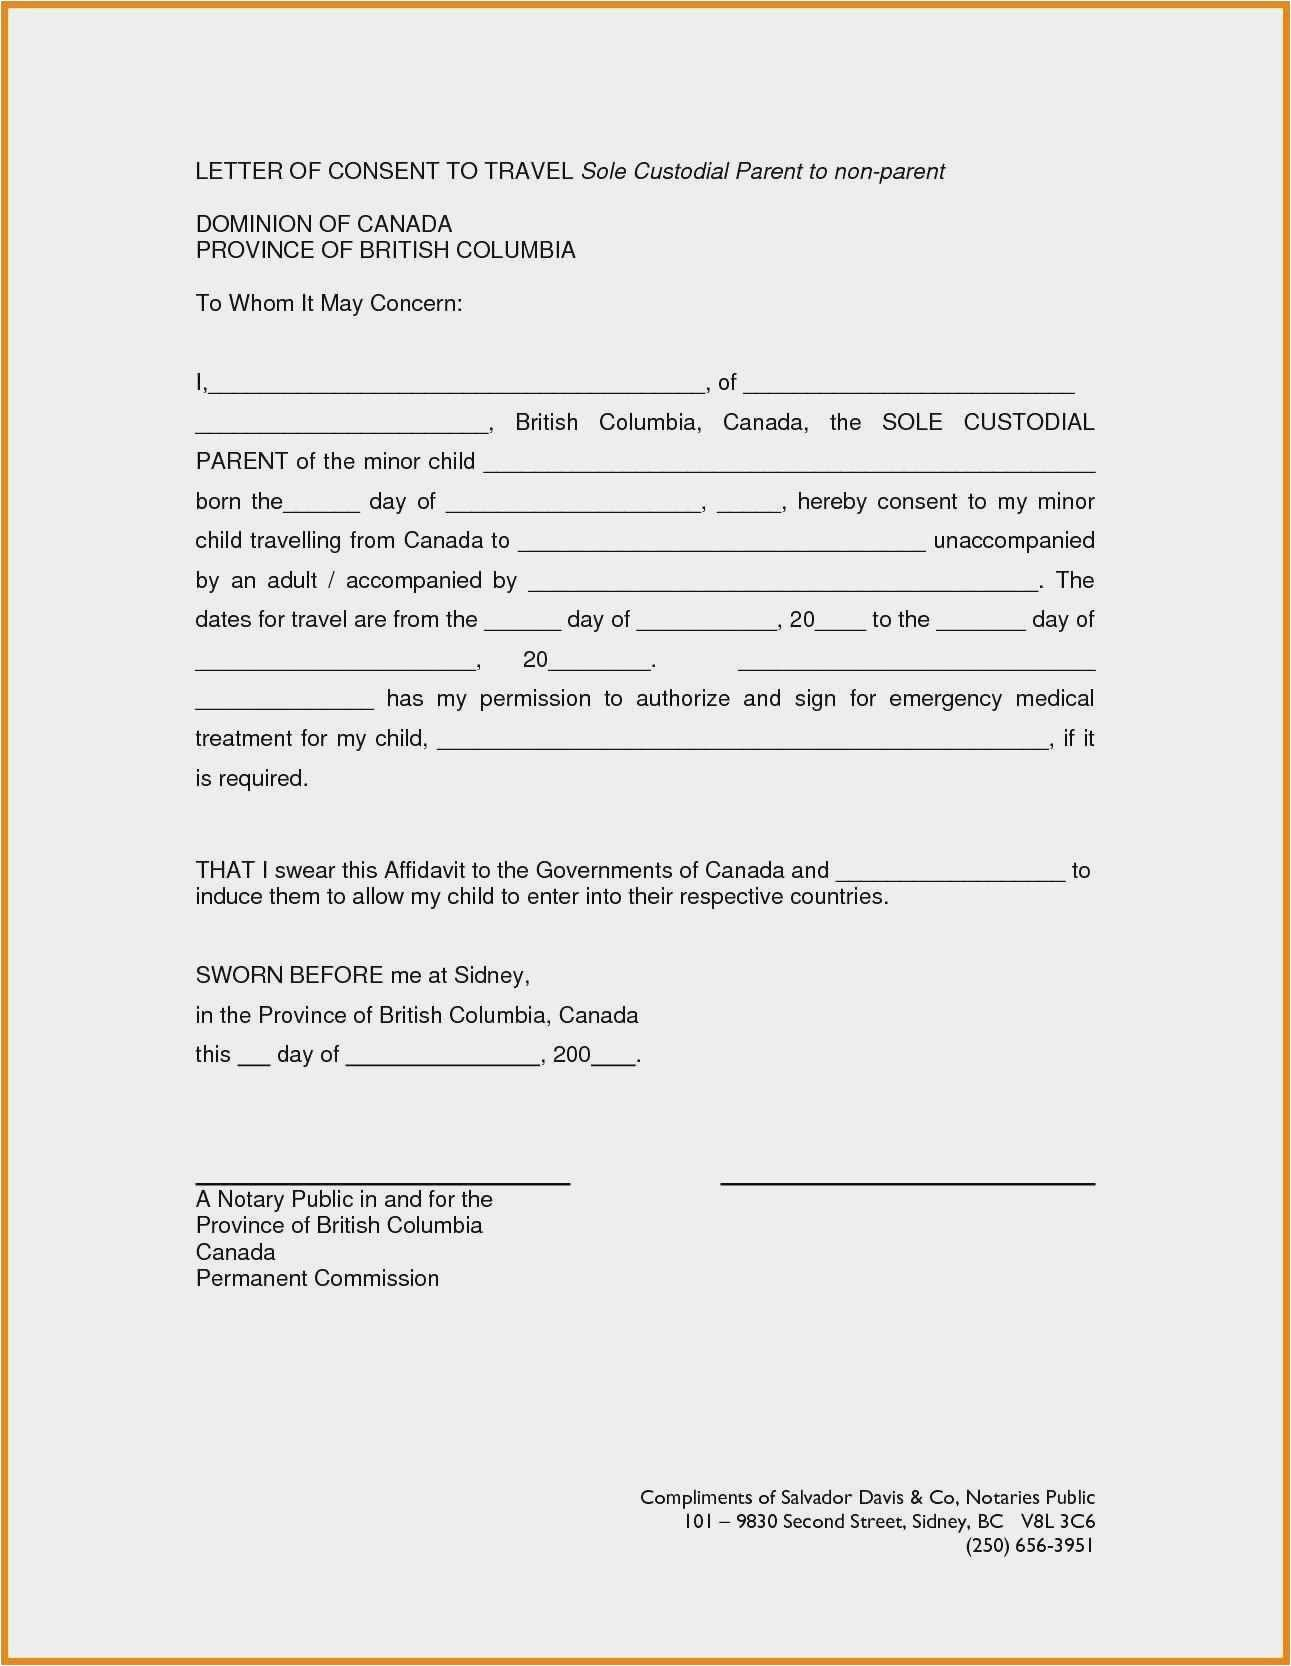 Notarized Custody Agreement Template Luxury Notarized Custody Agreement Template New Beautiful Child Custody Agreement Support Letter Contract Template